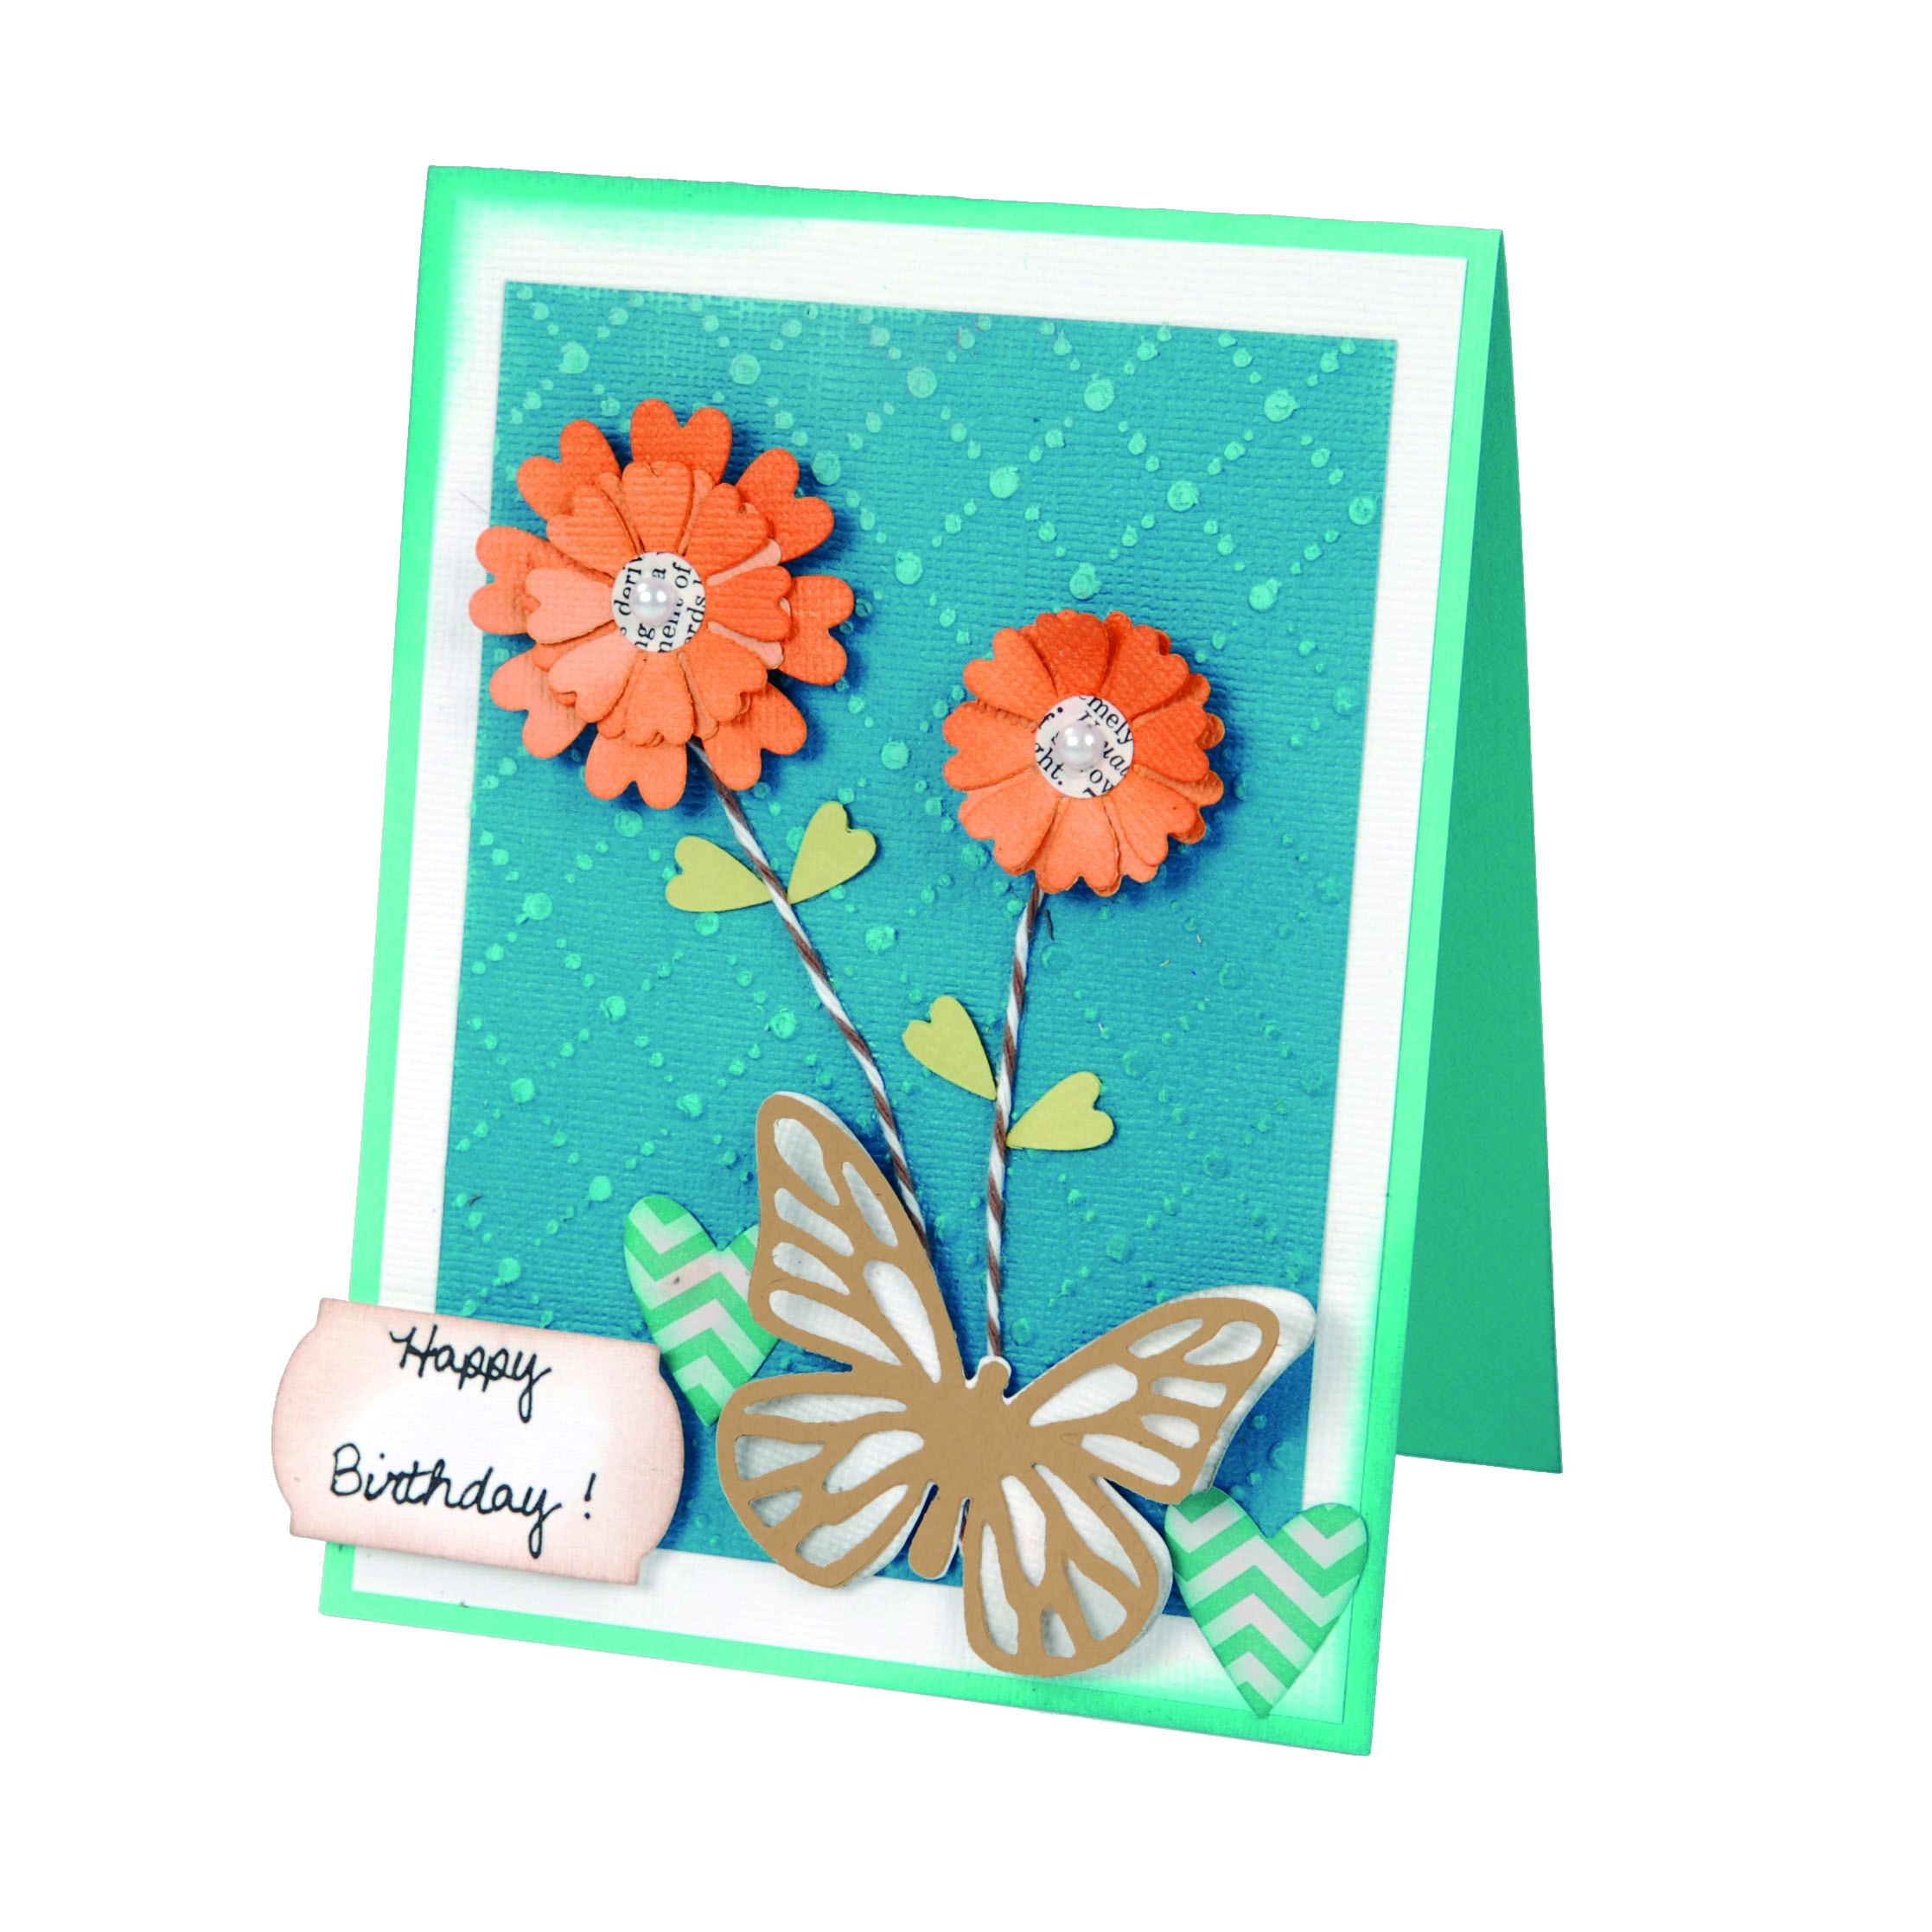 Blooming Butterflies And Flowers Birthday Card: National